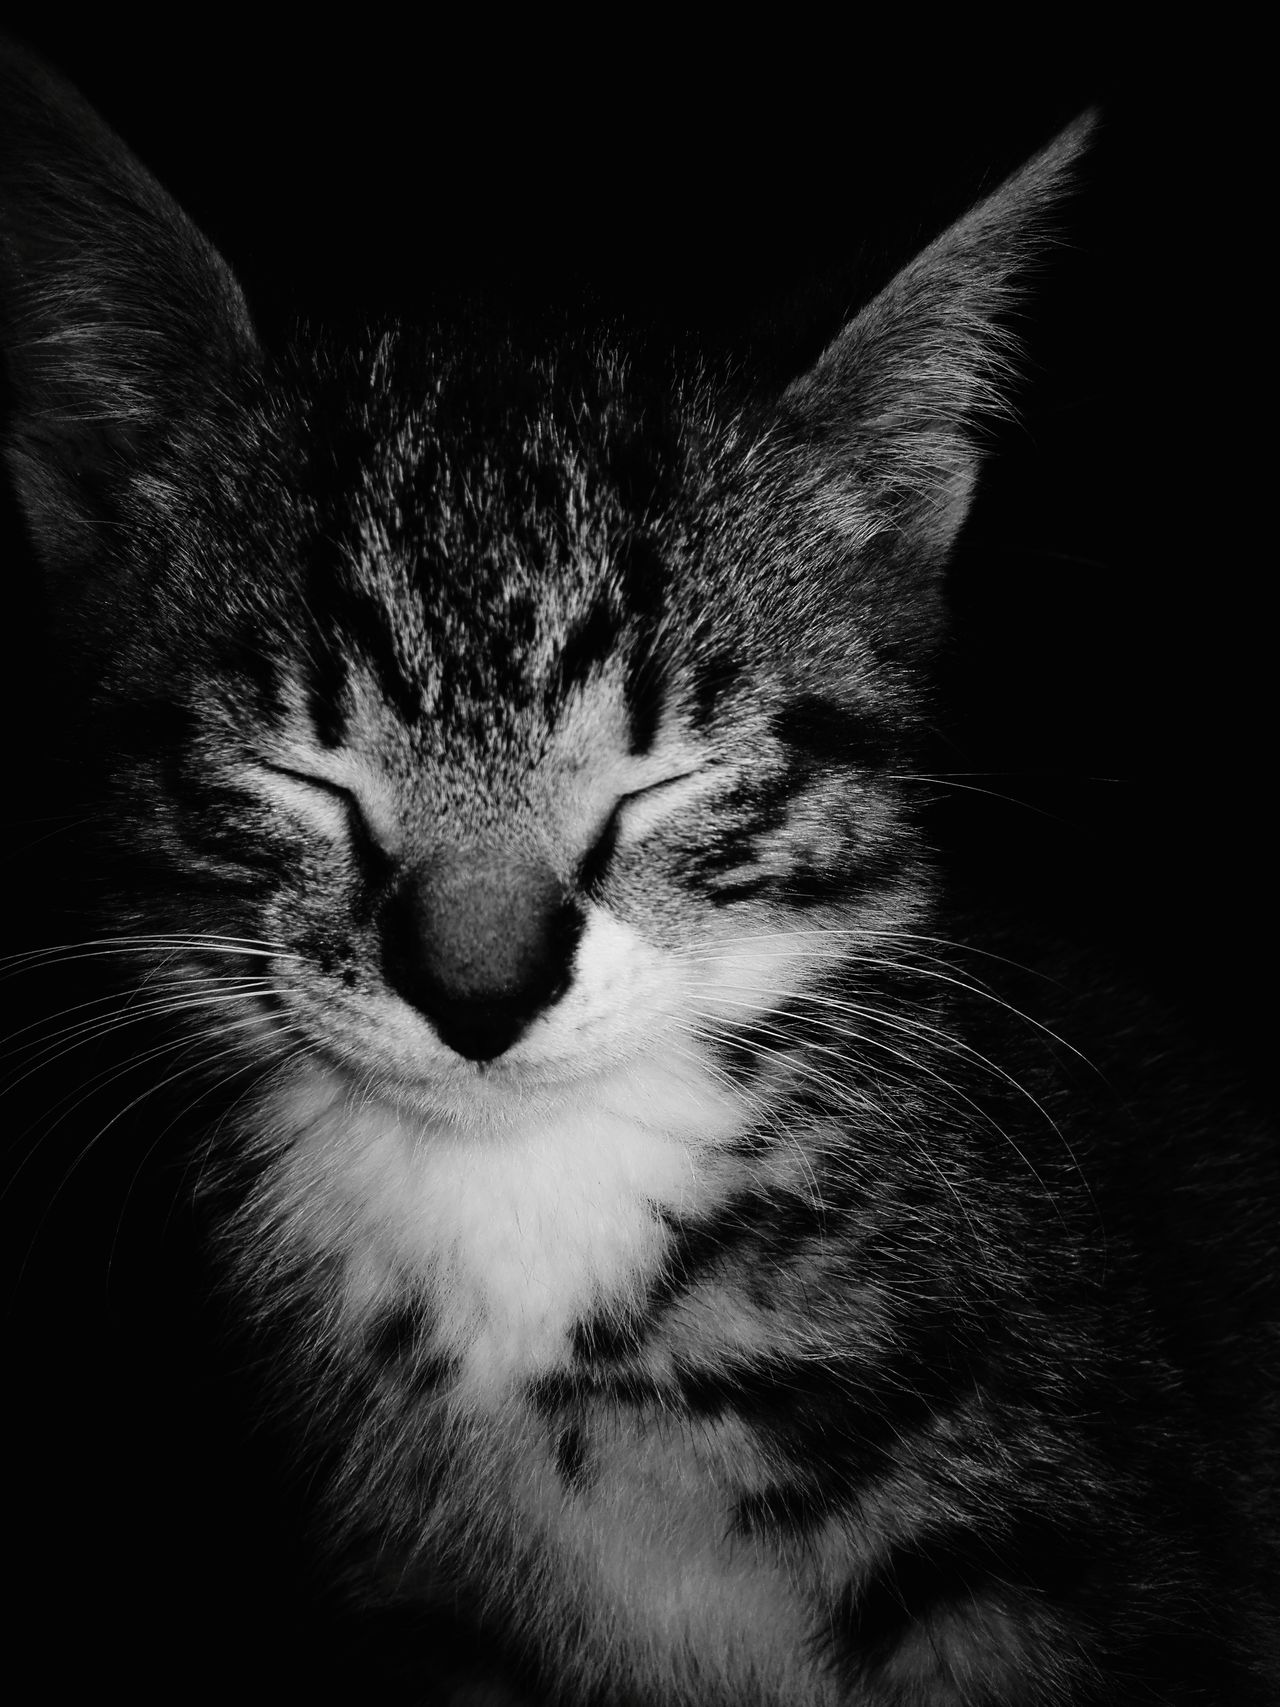 Kitten Black And White Black Cats Myfriends Majestic Animal Cat-ching Background Catsoftheworld Catsofeyeem Katzenleben Kitten 🐱 Kittens Kittens Of Eyeem Katzen Cats 🐱 Cats Of EyeEm Gatos Cat Animals Black And White Black Feline Black And White Photography